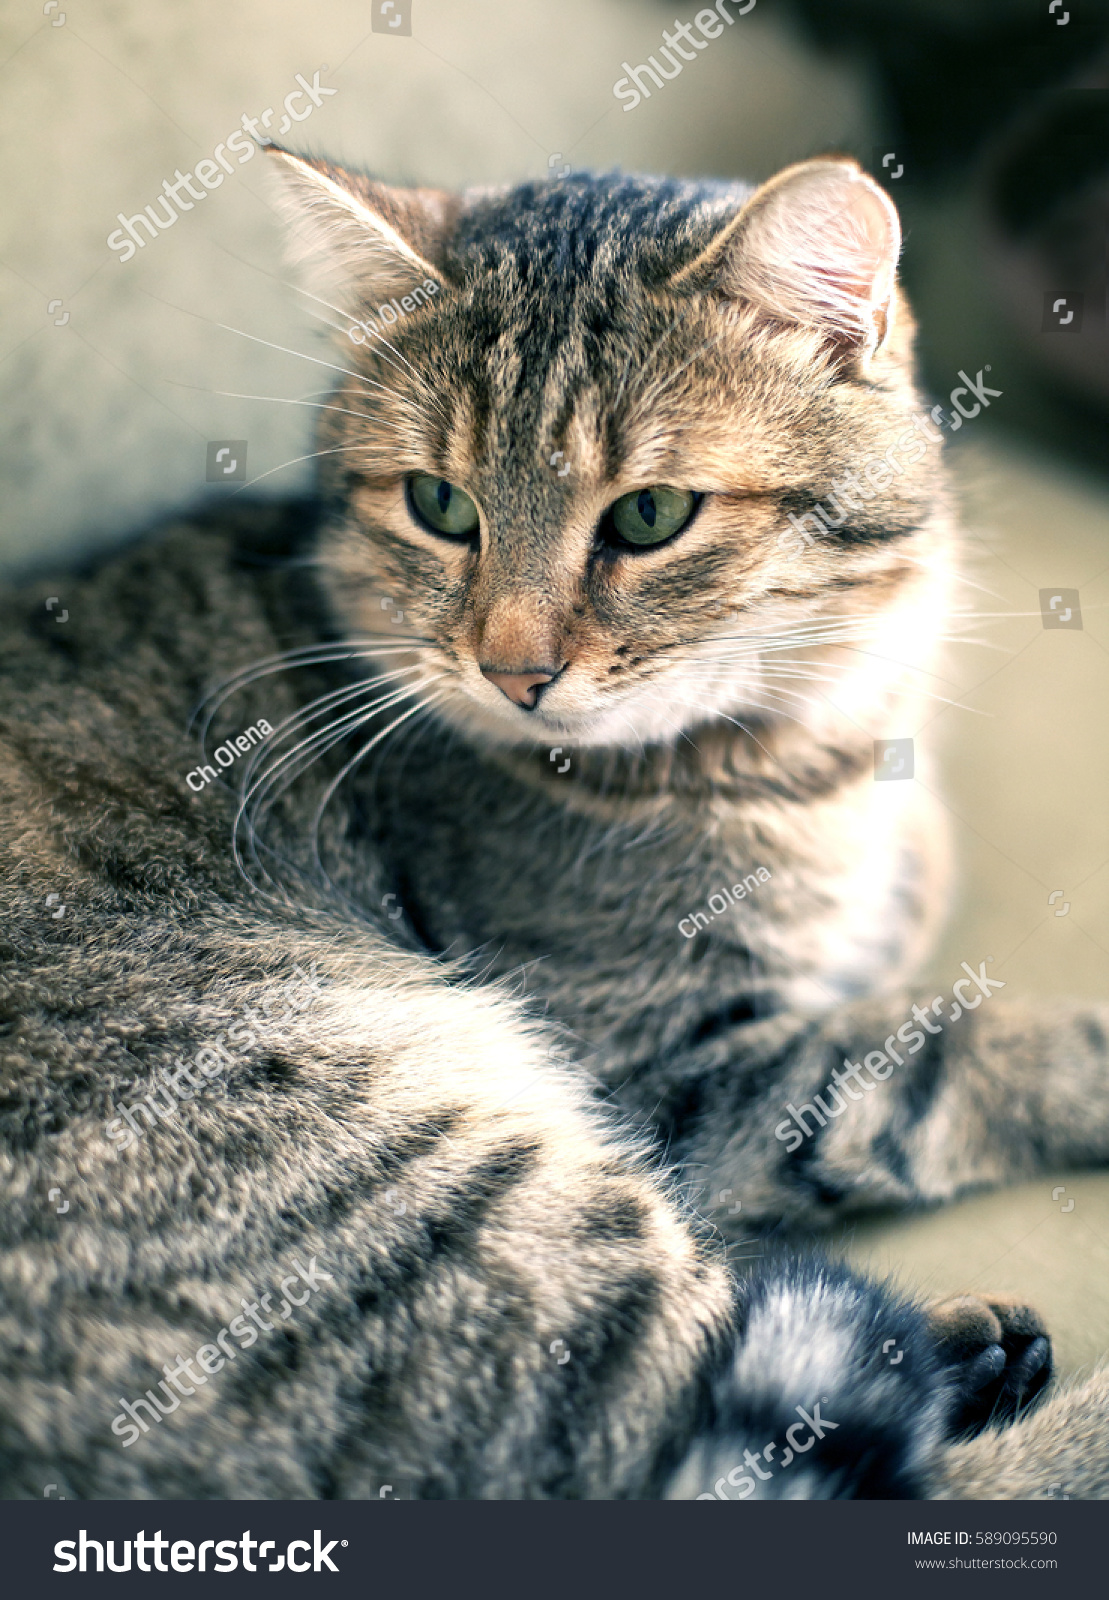 97837a30dd Cat Home Striped Spotted Tabby Stock Photo (Edit Now) 589095590 ...